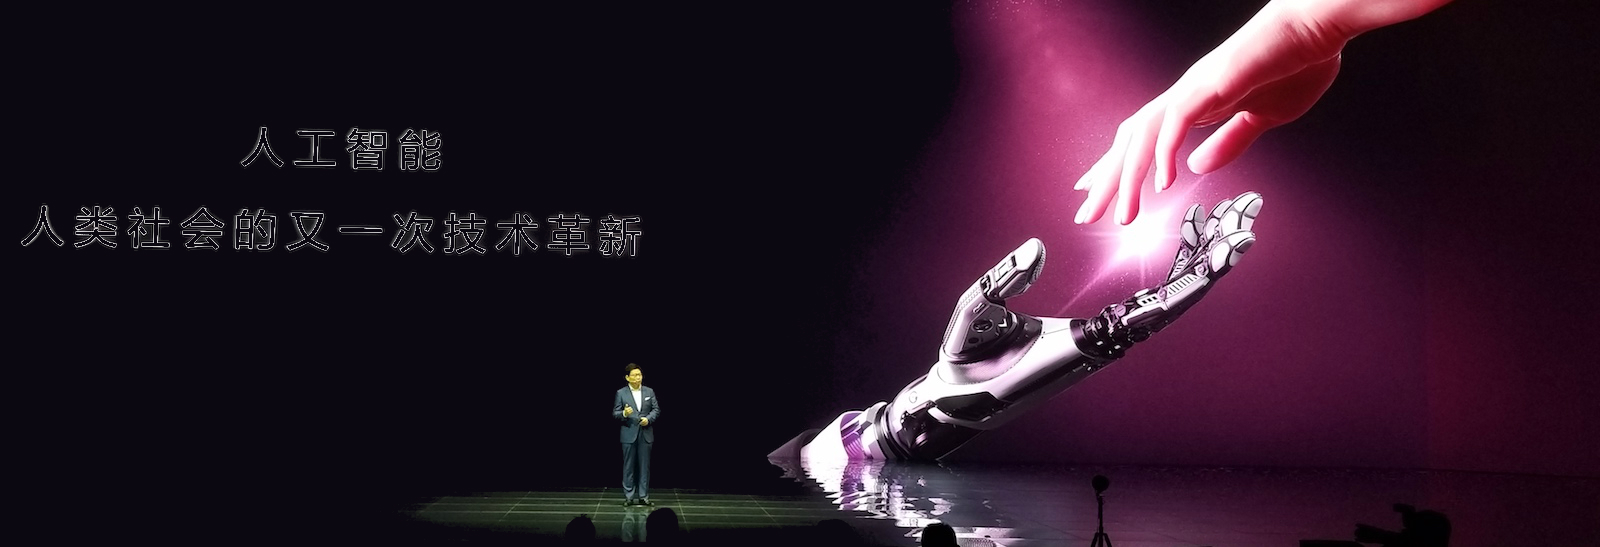 Richard Yu, CEO of Chinese Huawei Consumer Business Group, speaks in Shanghai (Photo: VCG/Getty)